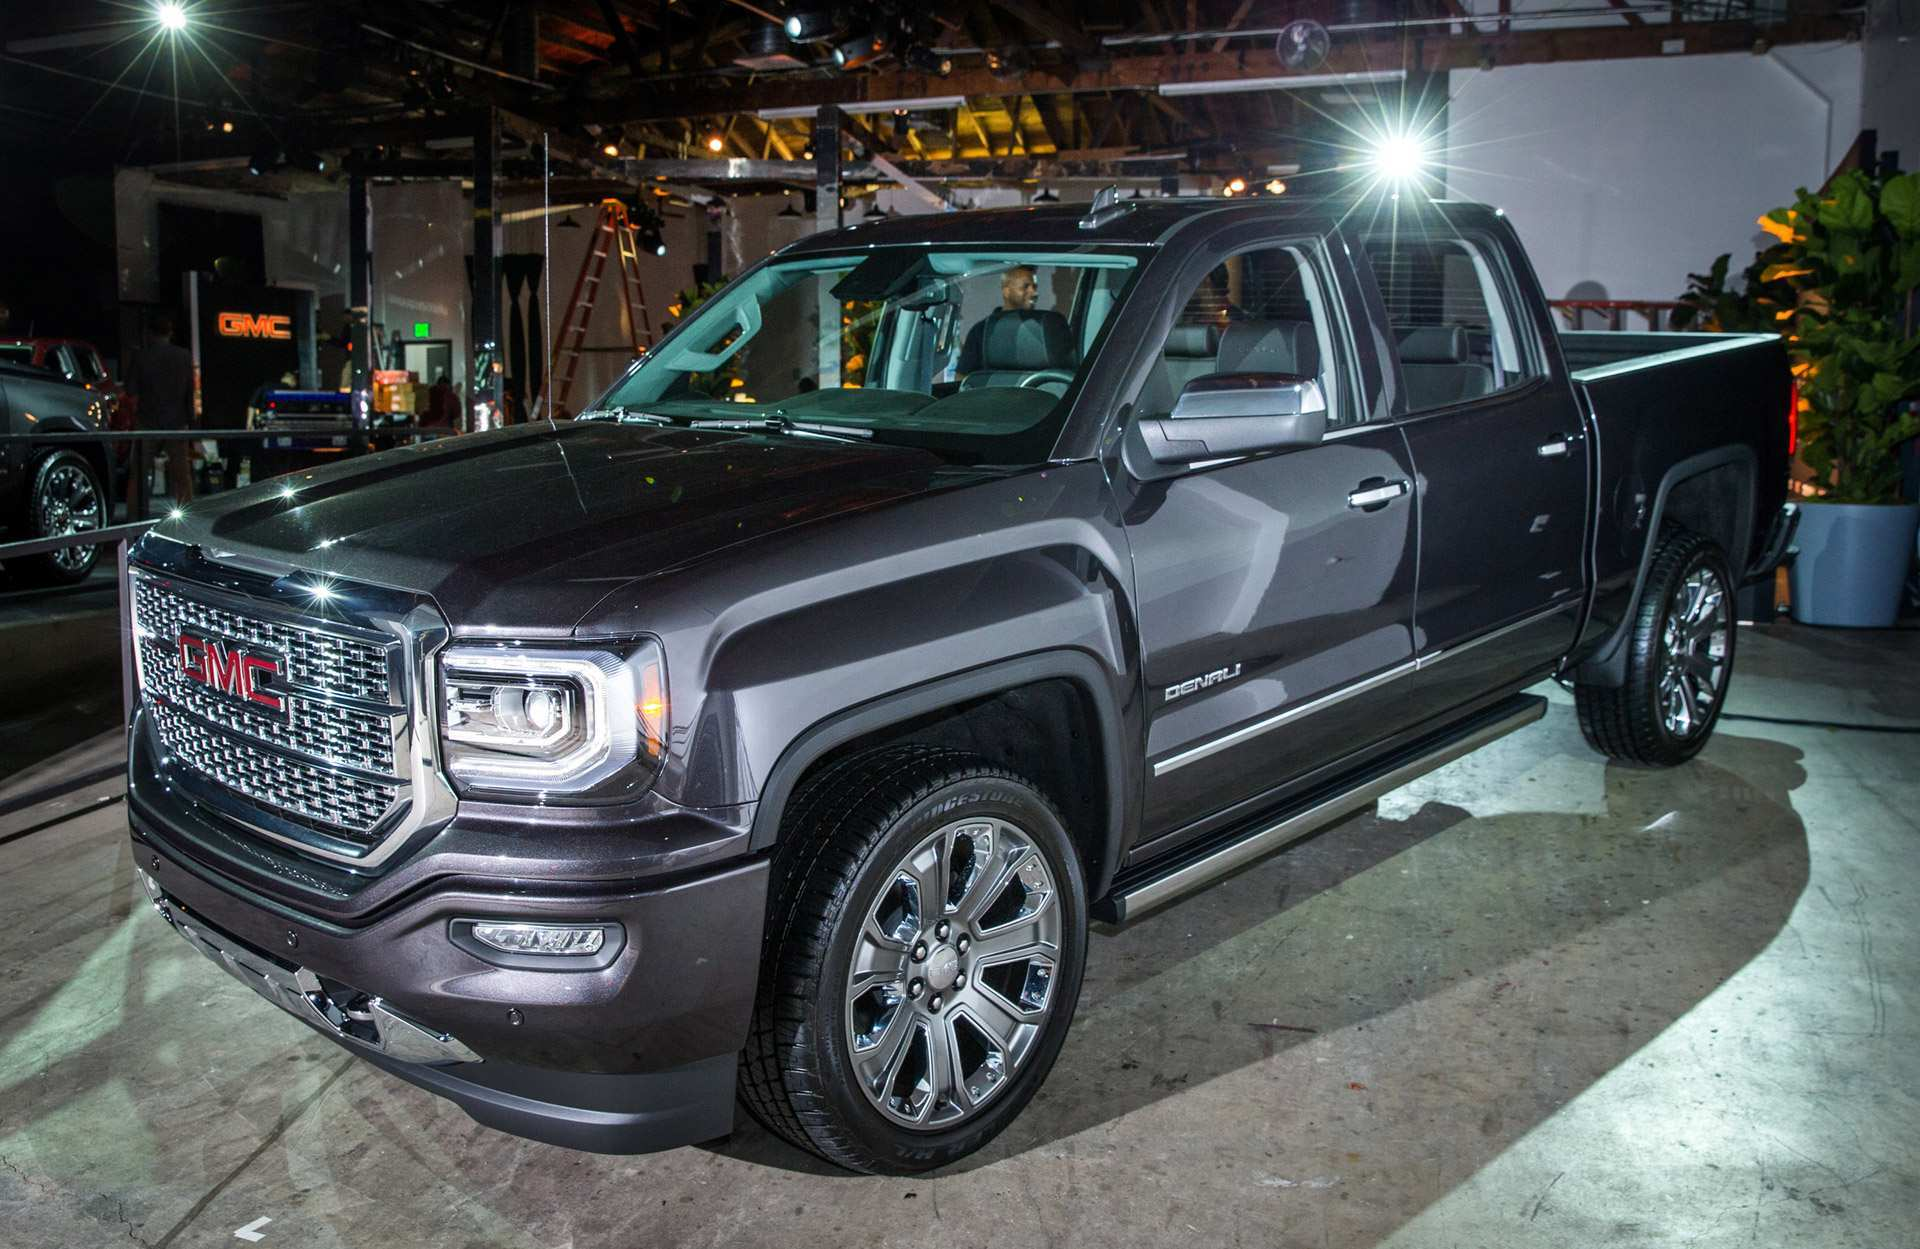 65 The 2020 BMW Denali Ultimate Style for 2020 BMW Denali Ultimate